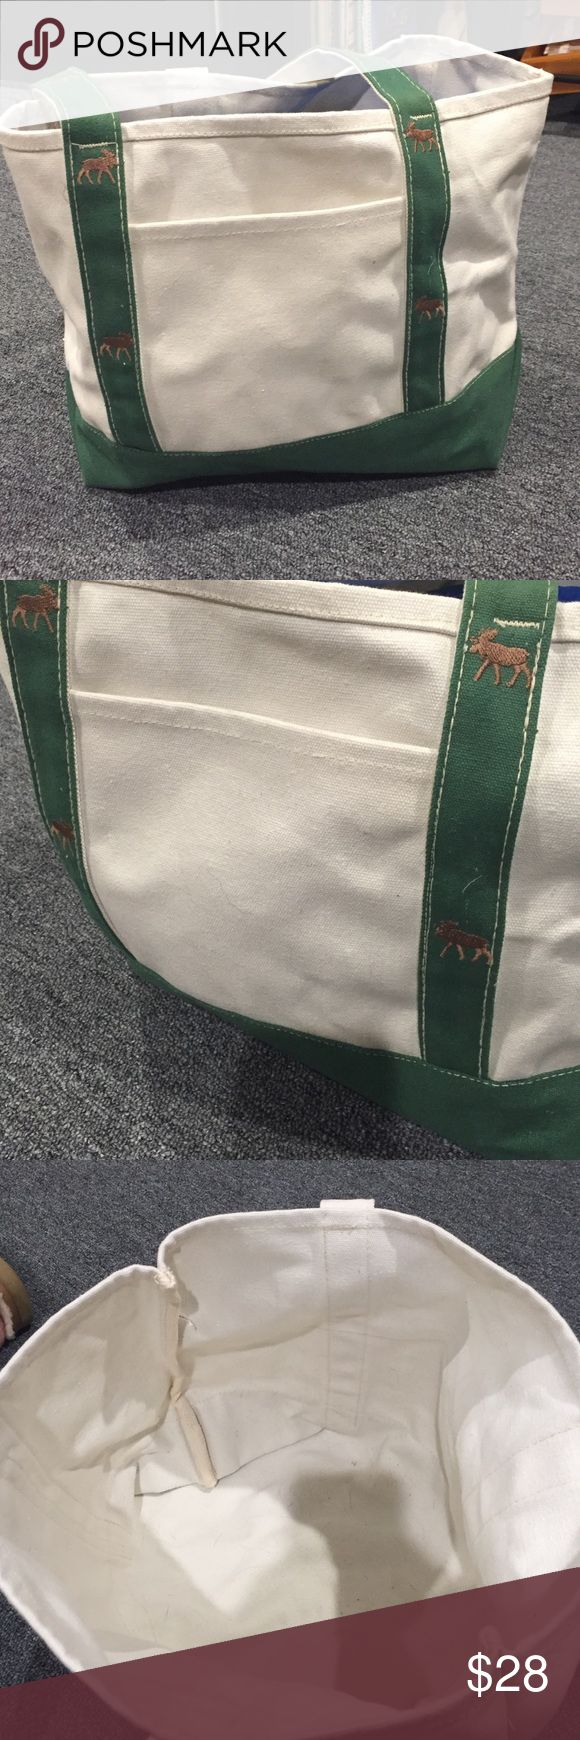 Canvas Tote Very gently used canvas tote bag. Green straps with embroidered moose, one exterior  slip pocket. Very little signs of use. Are you think this is from Abercrombie but not 100% sure. Abercrombie & Fitch Bags Totes